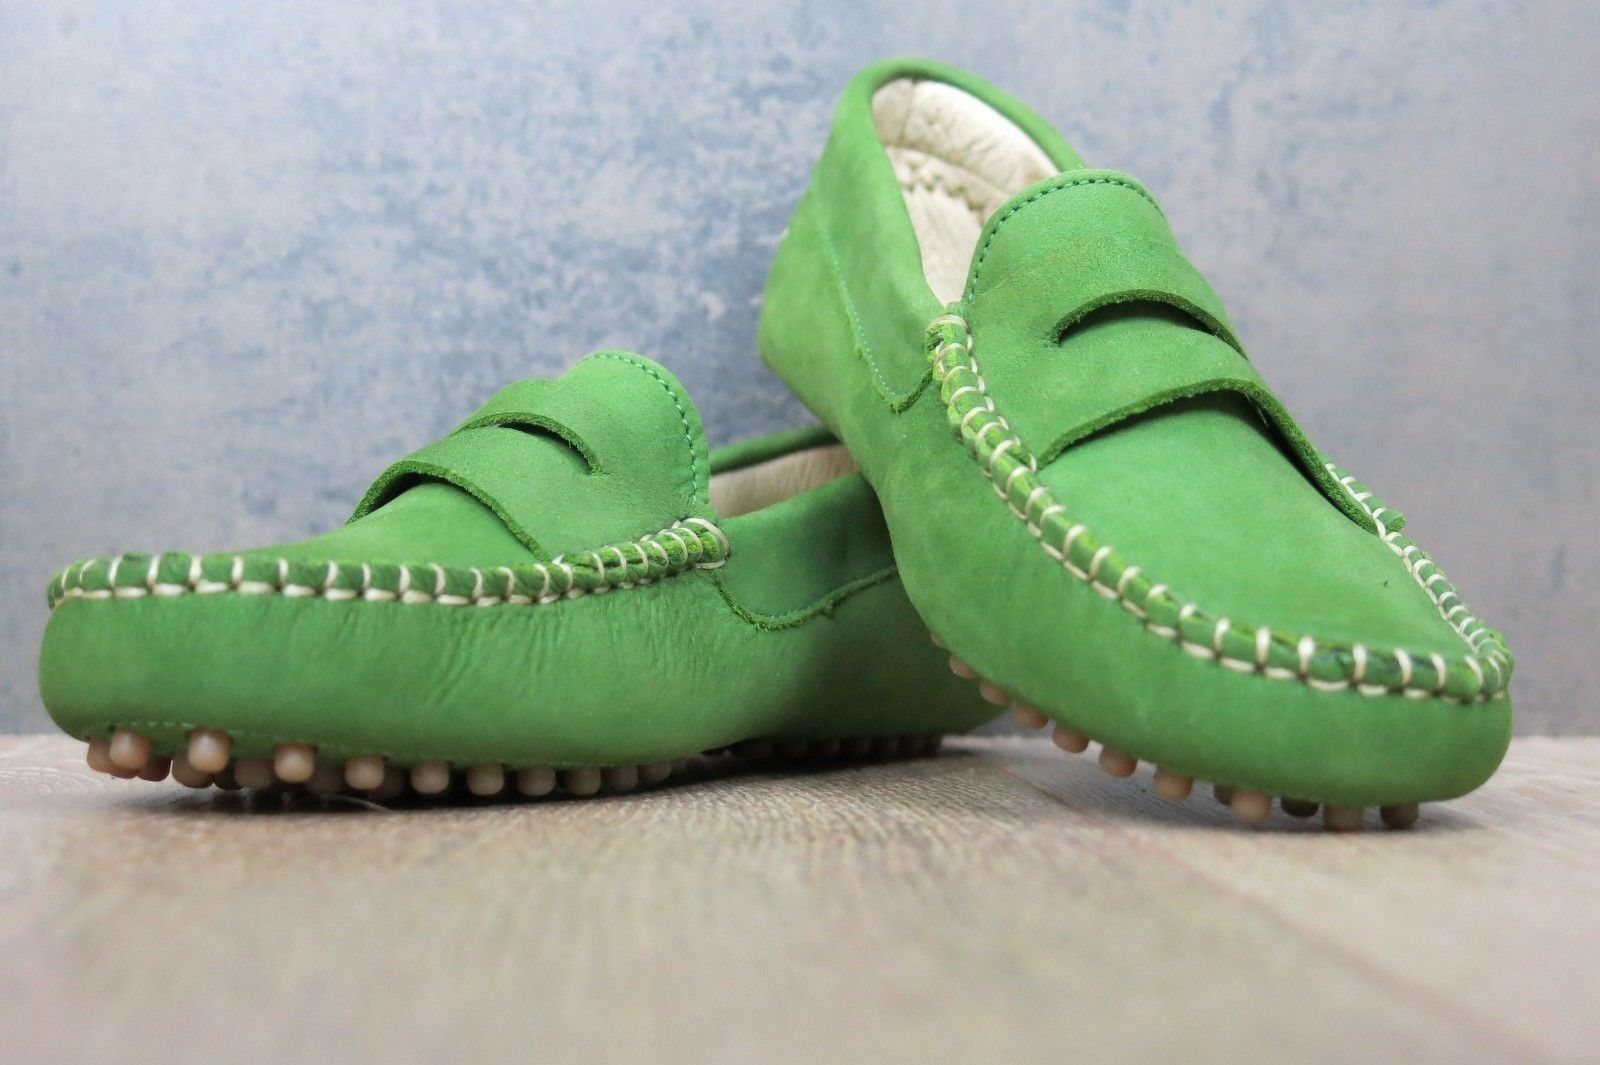 FRENCH SOLE Driving Leder Schuhes UK 2.5-3 Eu35 GREEN Nubuck Leder Driving Moccasin Flats fde3ad